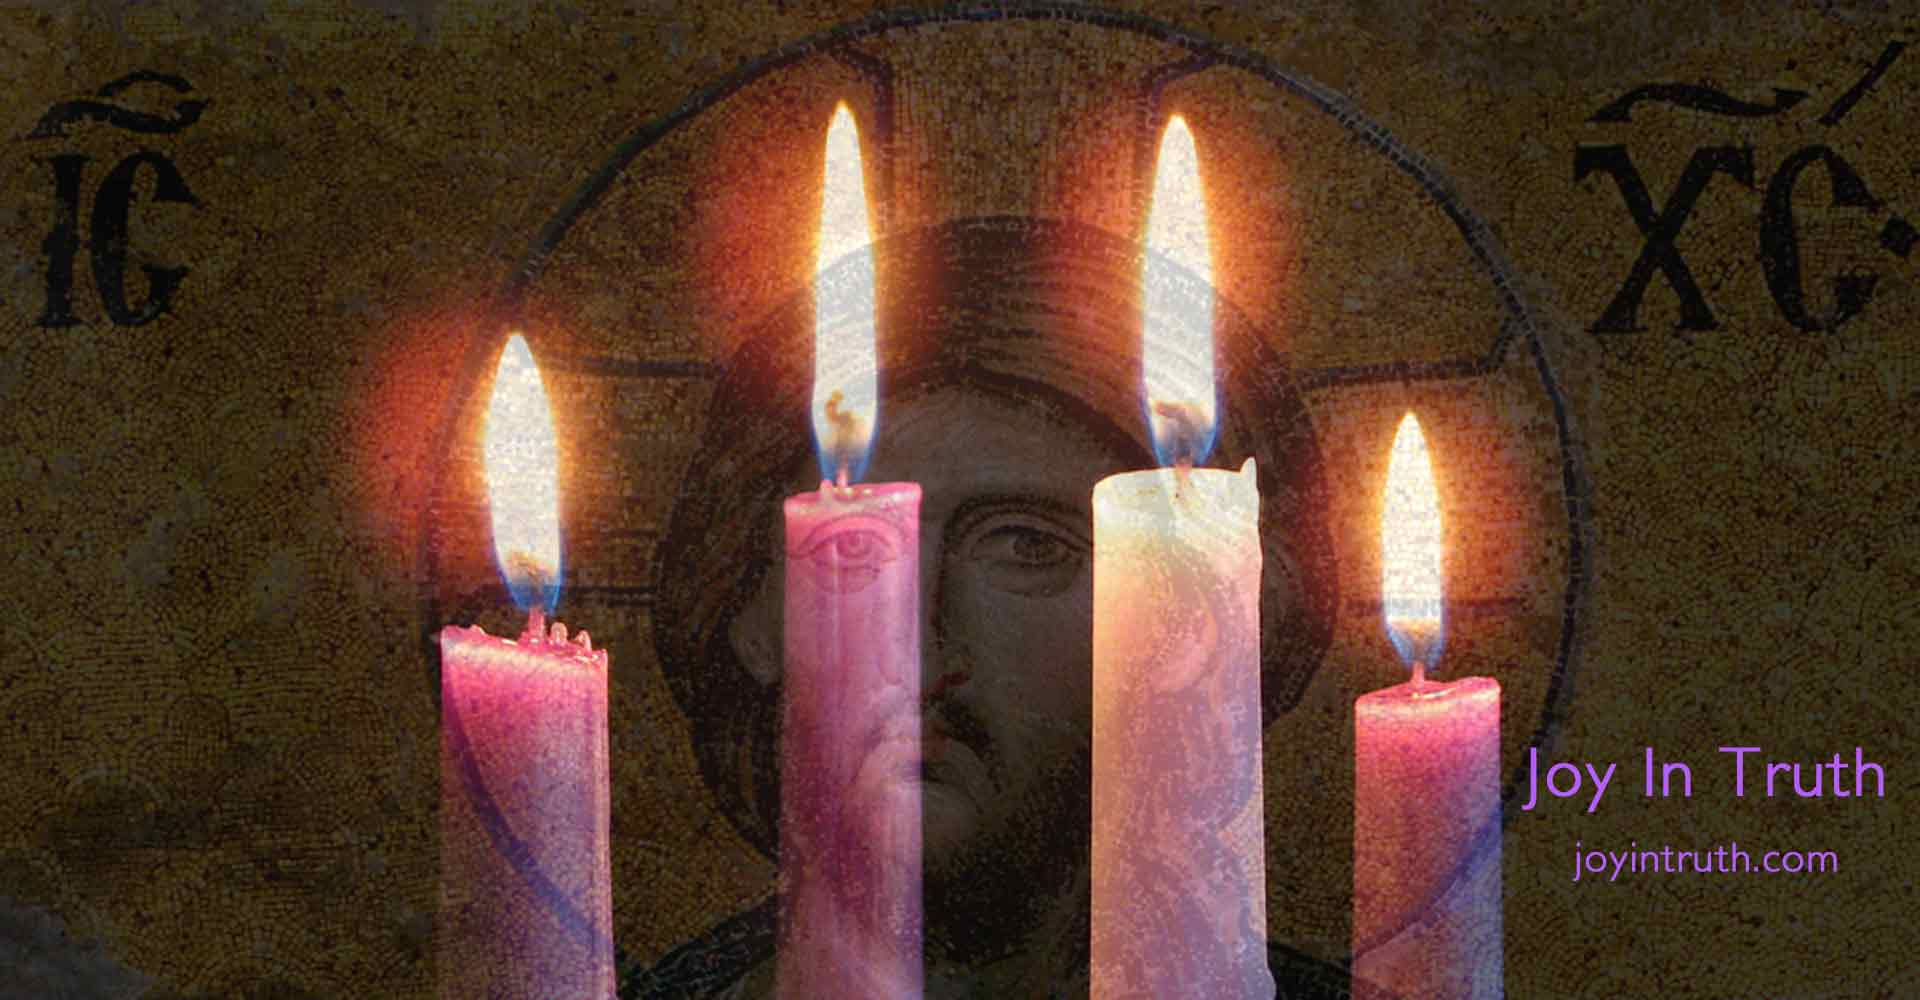 Advent is a season to grow closer to Jesus